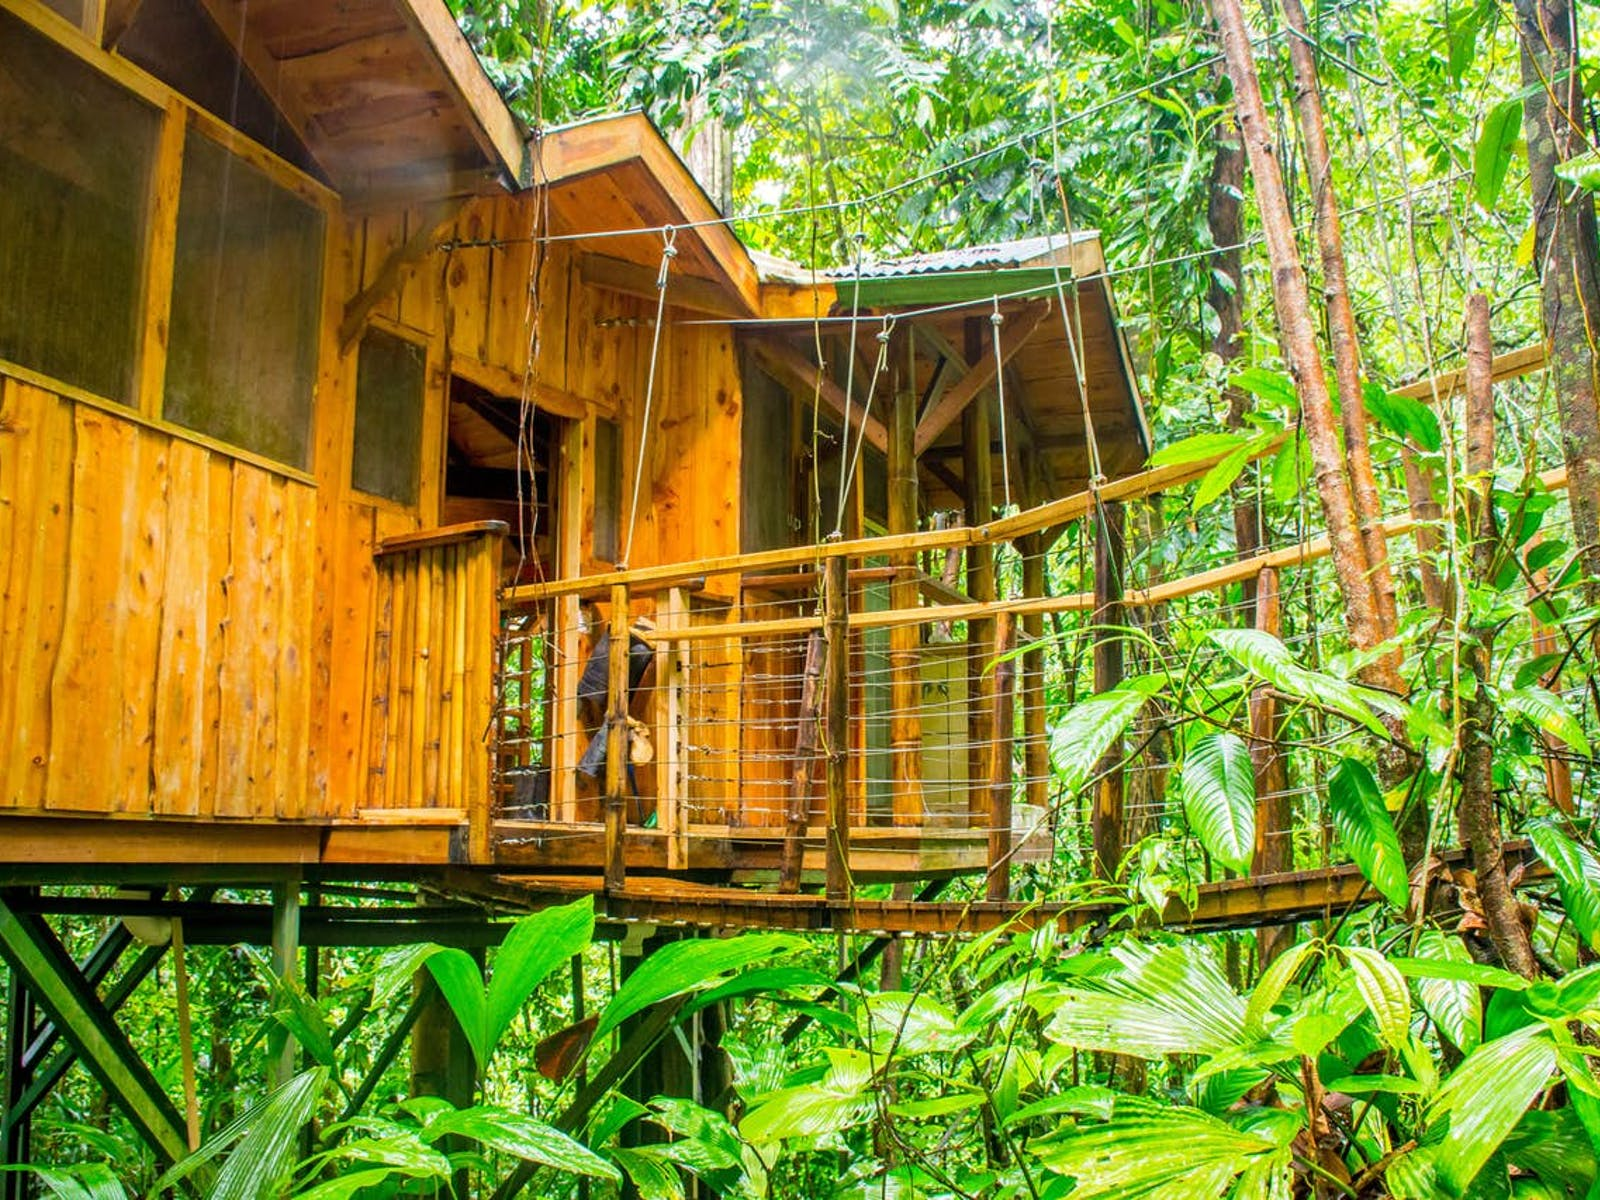 Treehouse in Costa Rica surrounded by rainforest